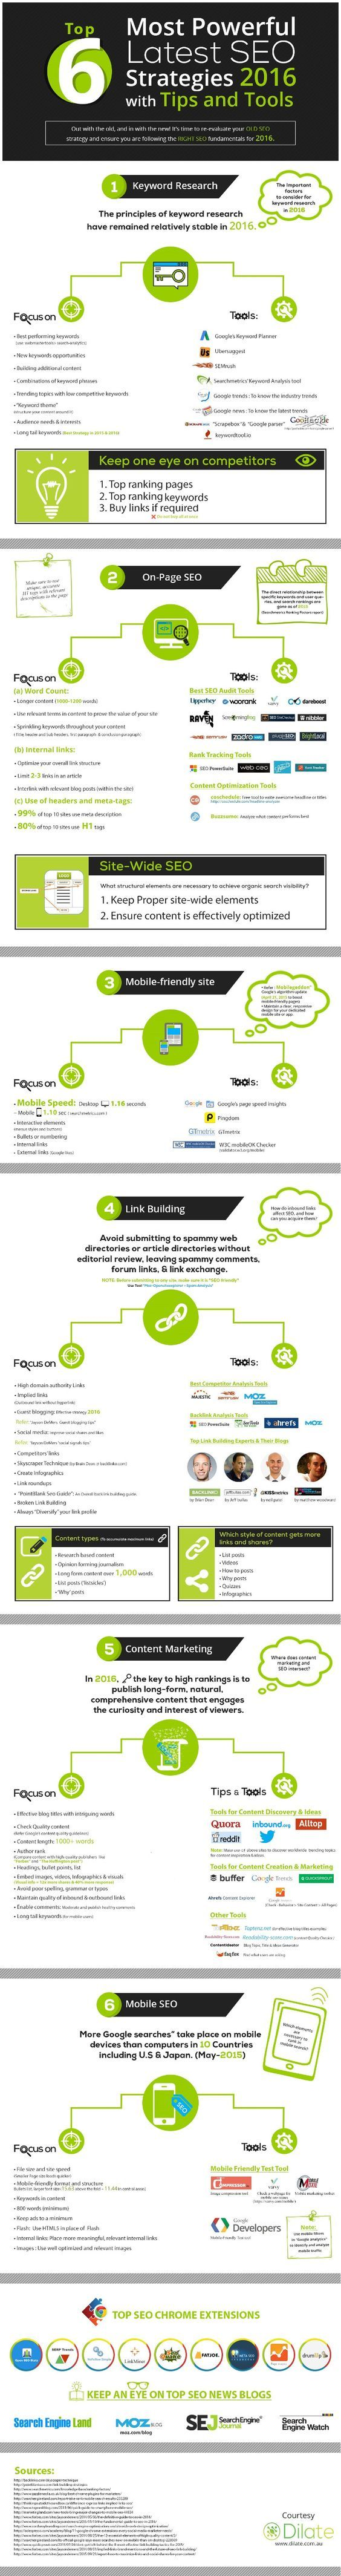 Advertising-Infographics-Connecticut-SEO-provides-Local-SEO-Google-AdWords-and-WordPress-expertise-to-Co Advertising Infographics : Connecticut SEO provides Local SEO, Google AdWords and WordPress expertise to Co...